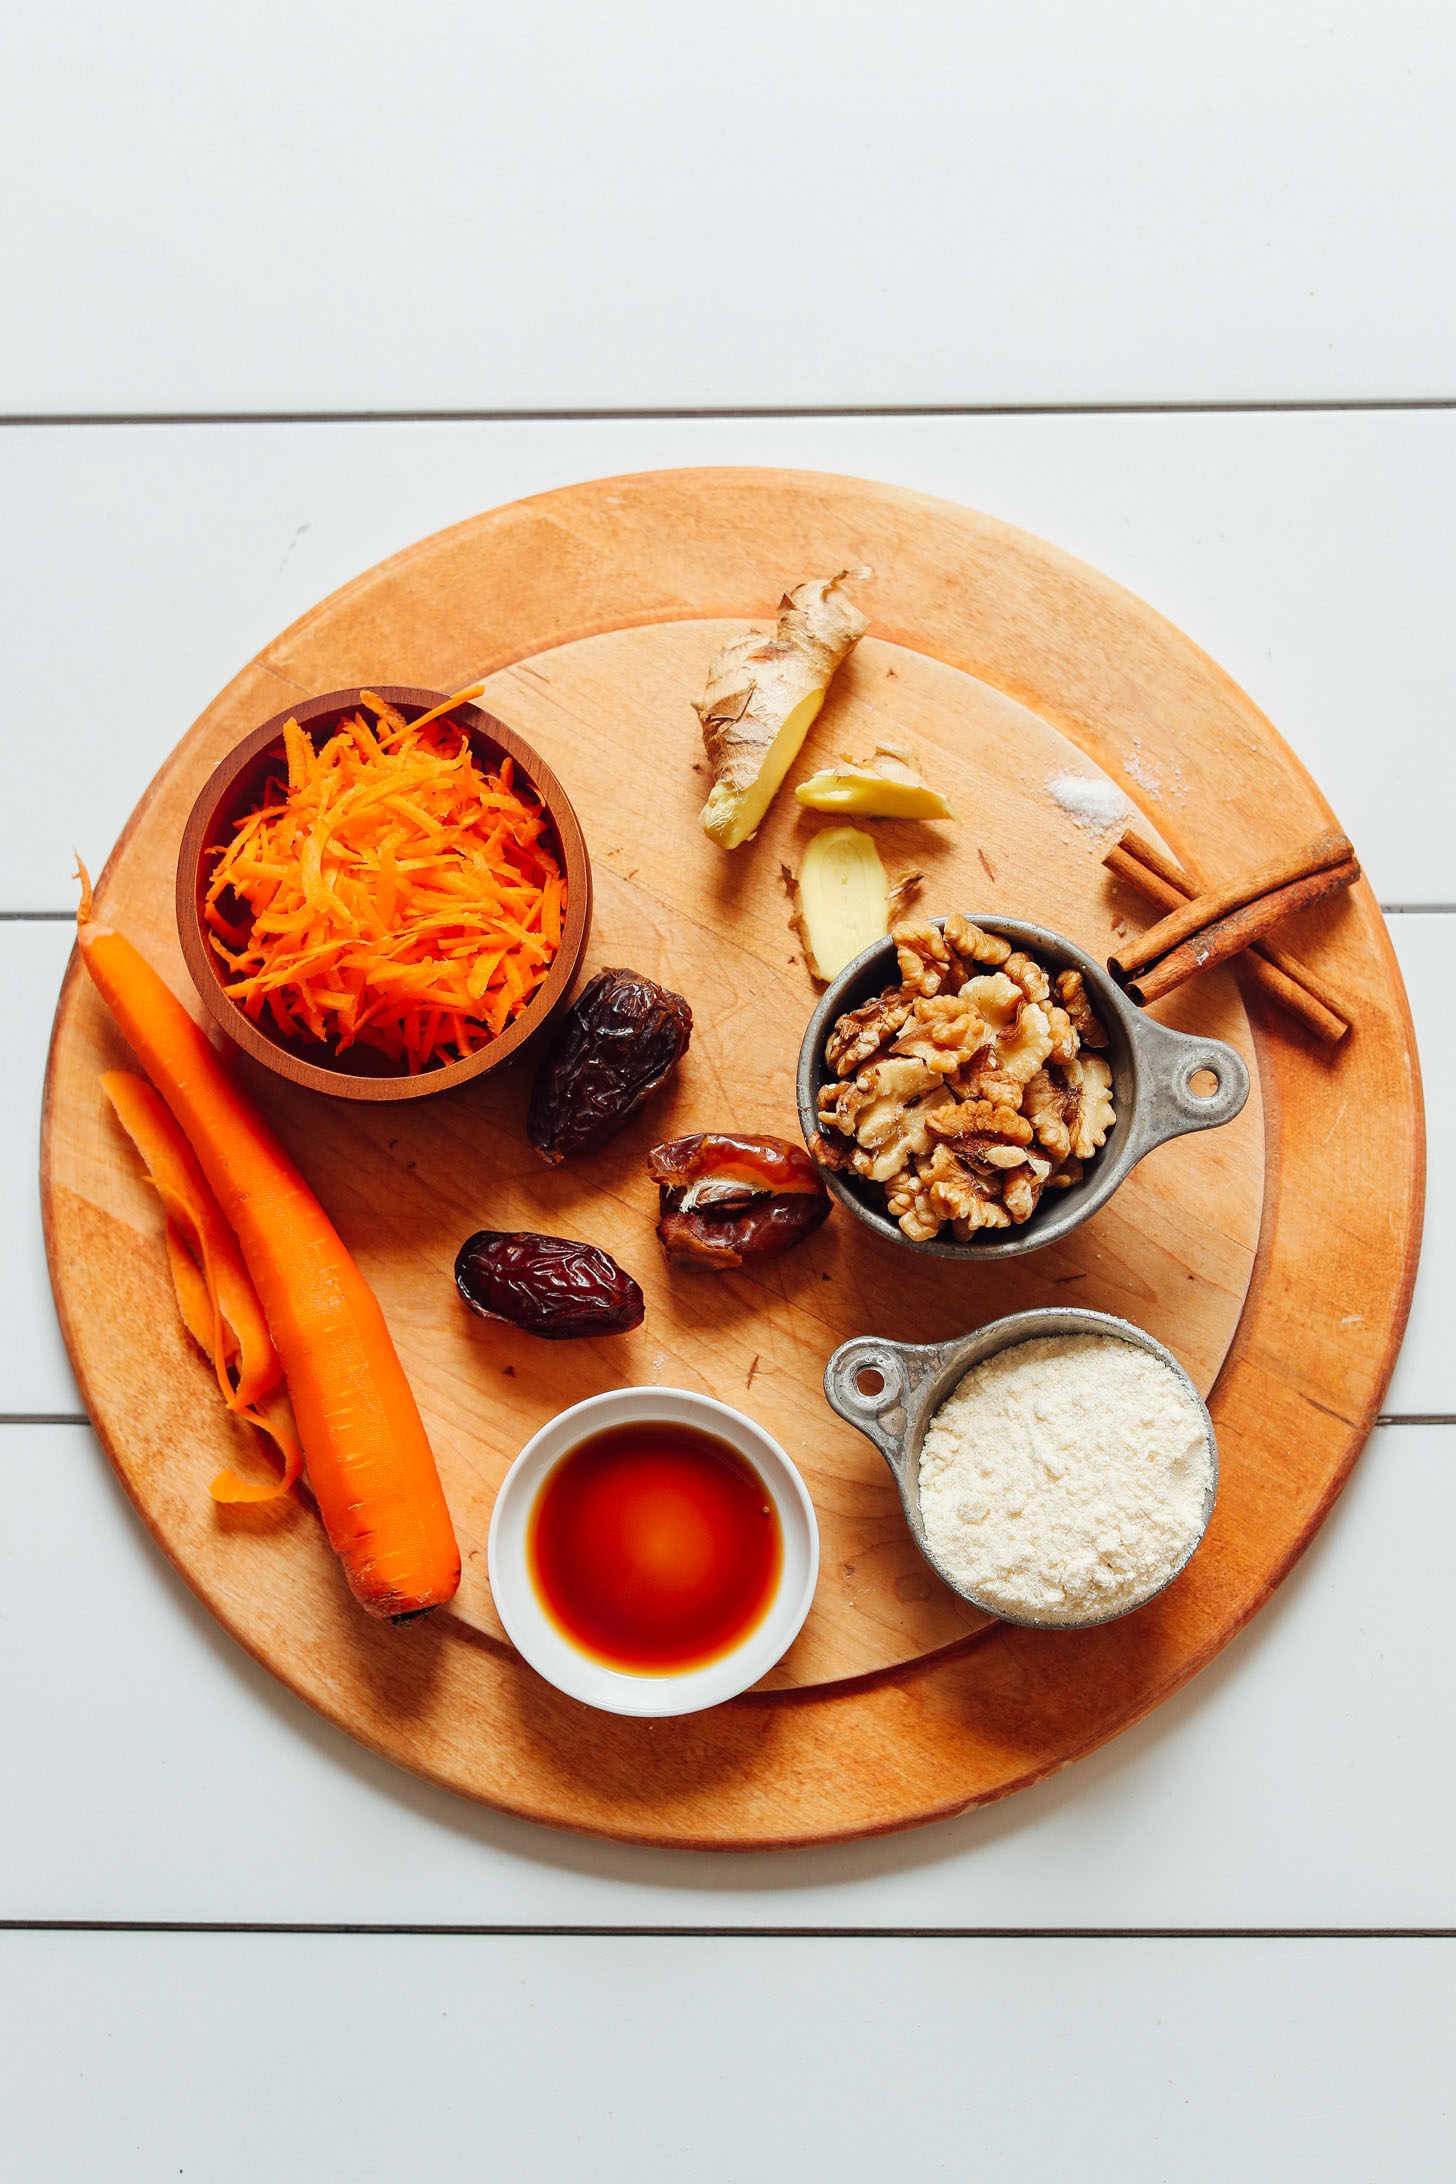 Wood cutting board with ingredients for making homemade Raw Vegan Carrot Cake